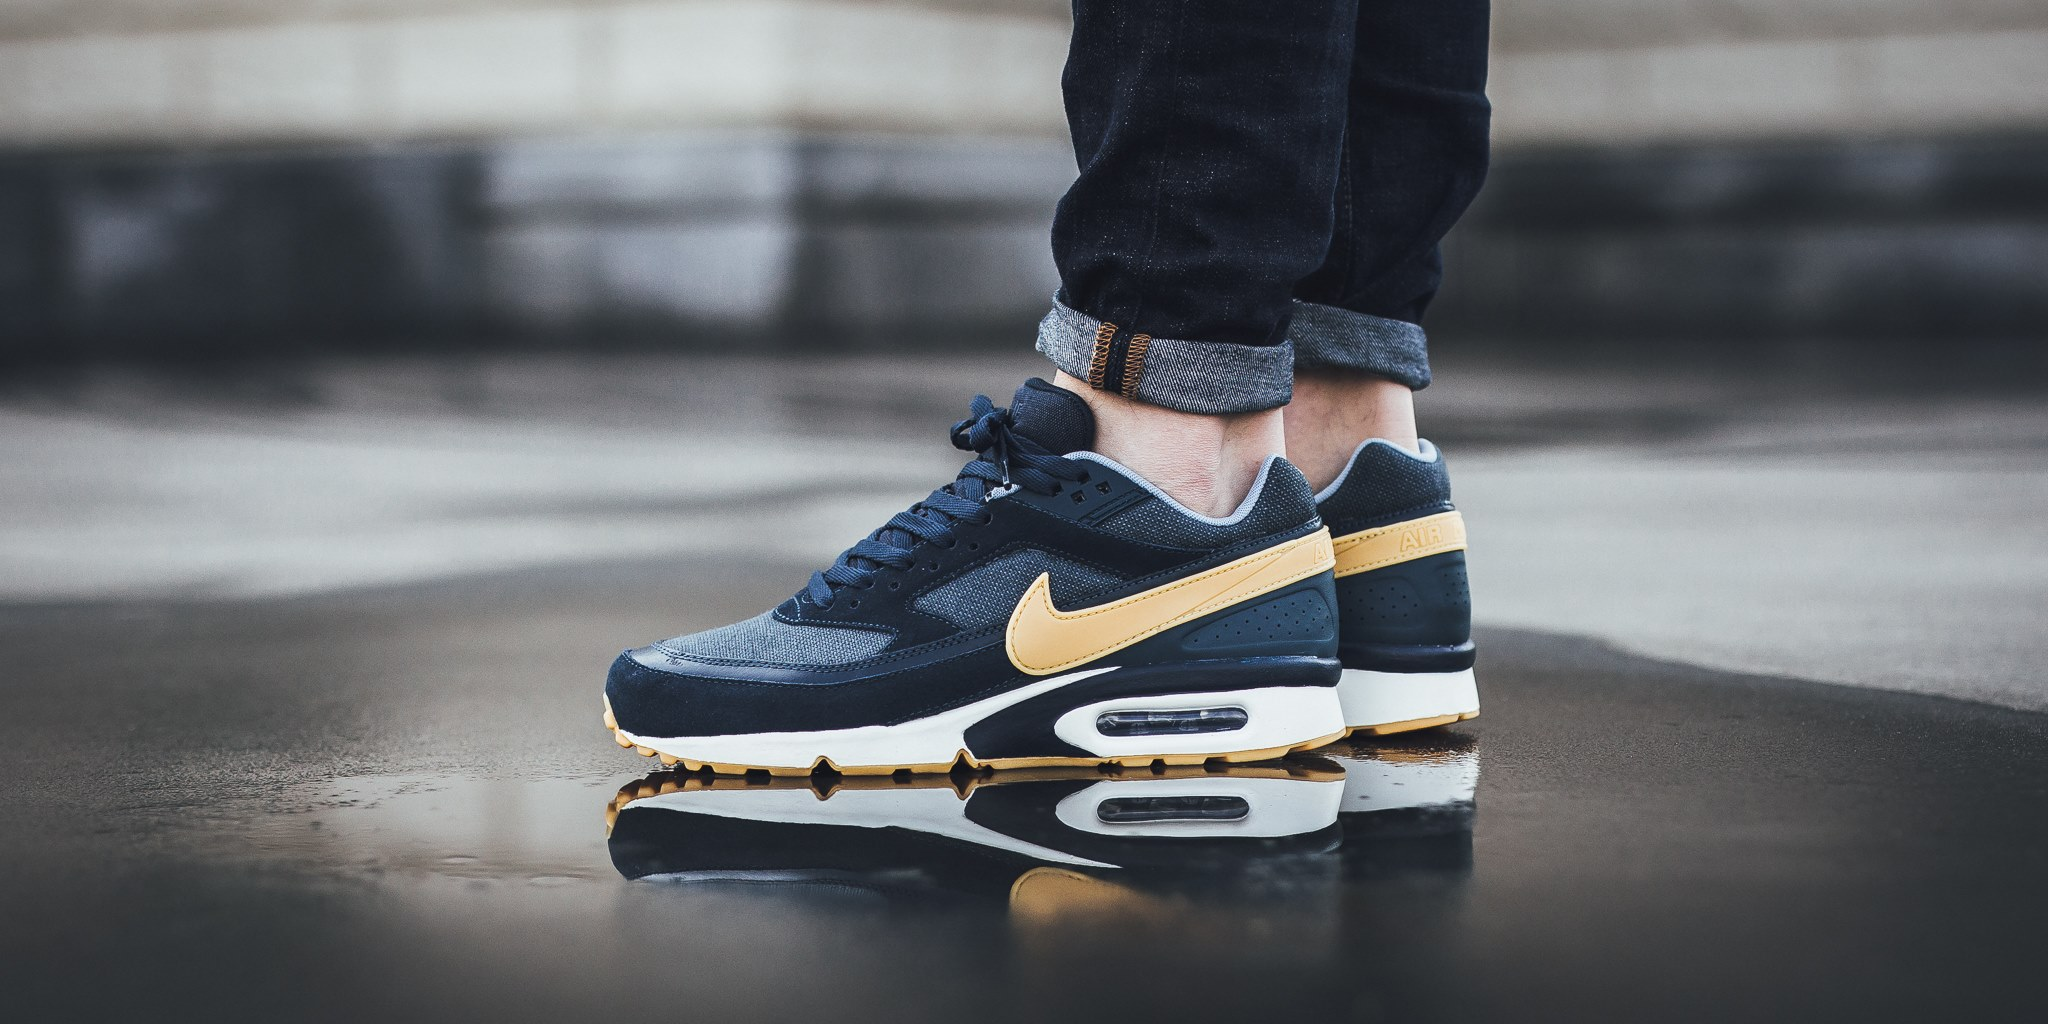 """quality design 88ff6 b69da A new colorway of the Nike Air Max BW Premium just arrived at retailers and  it sports an official finish of """"Armory Navy Gum Yellow-Blue Fox."""